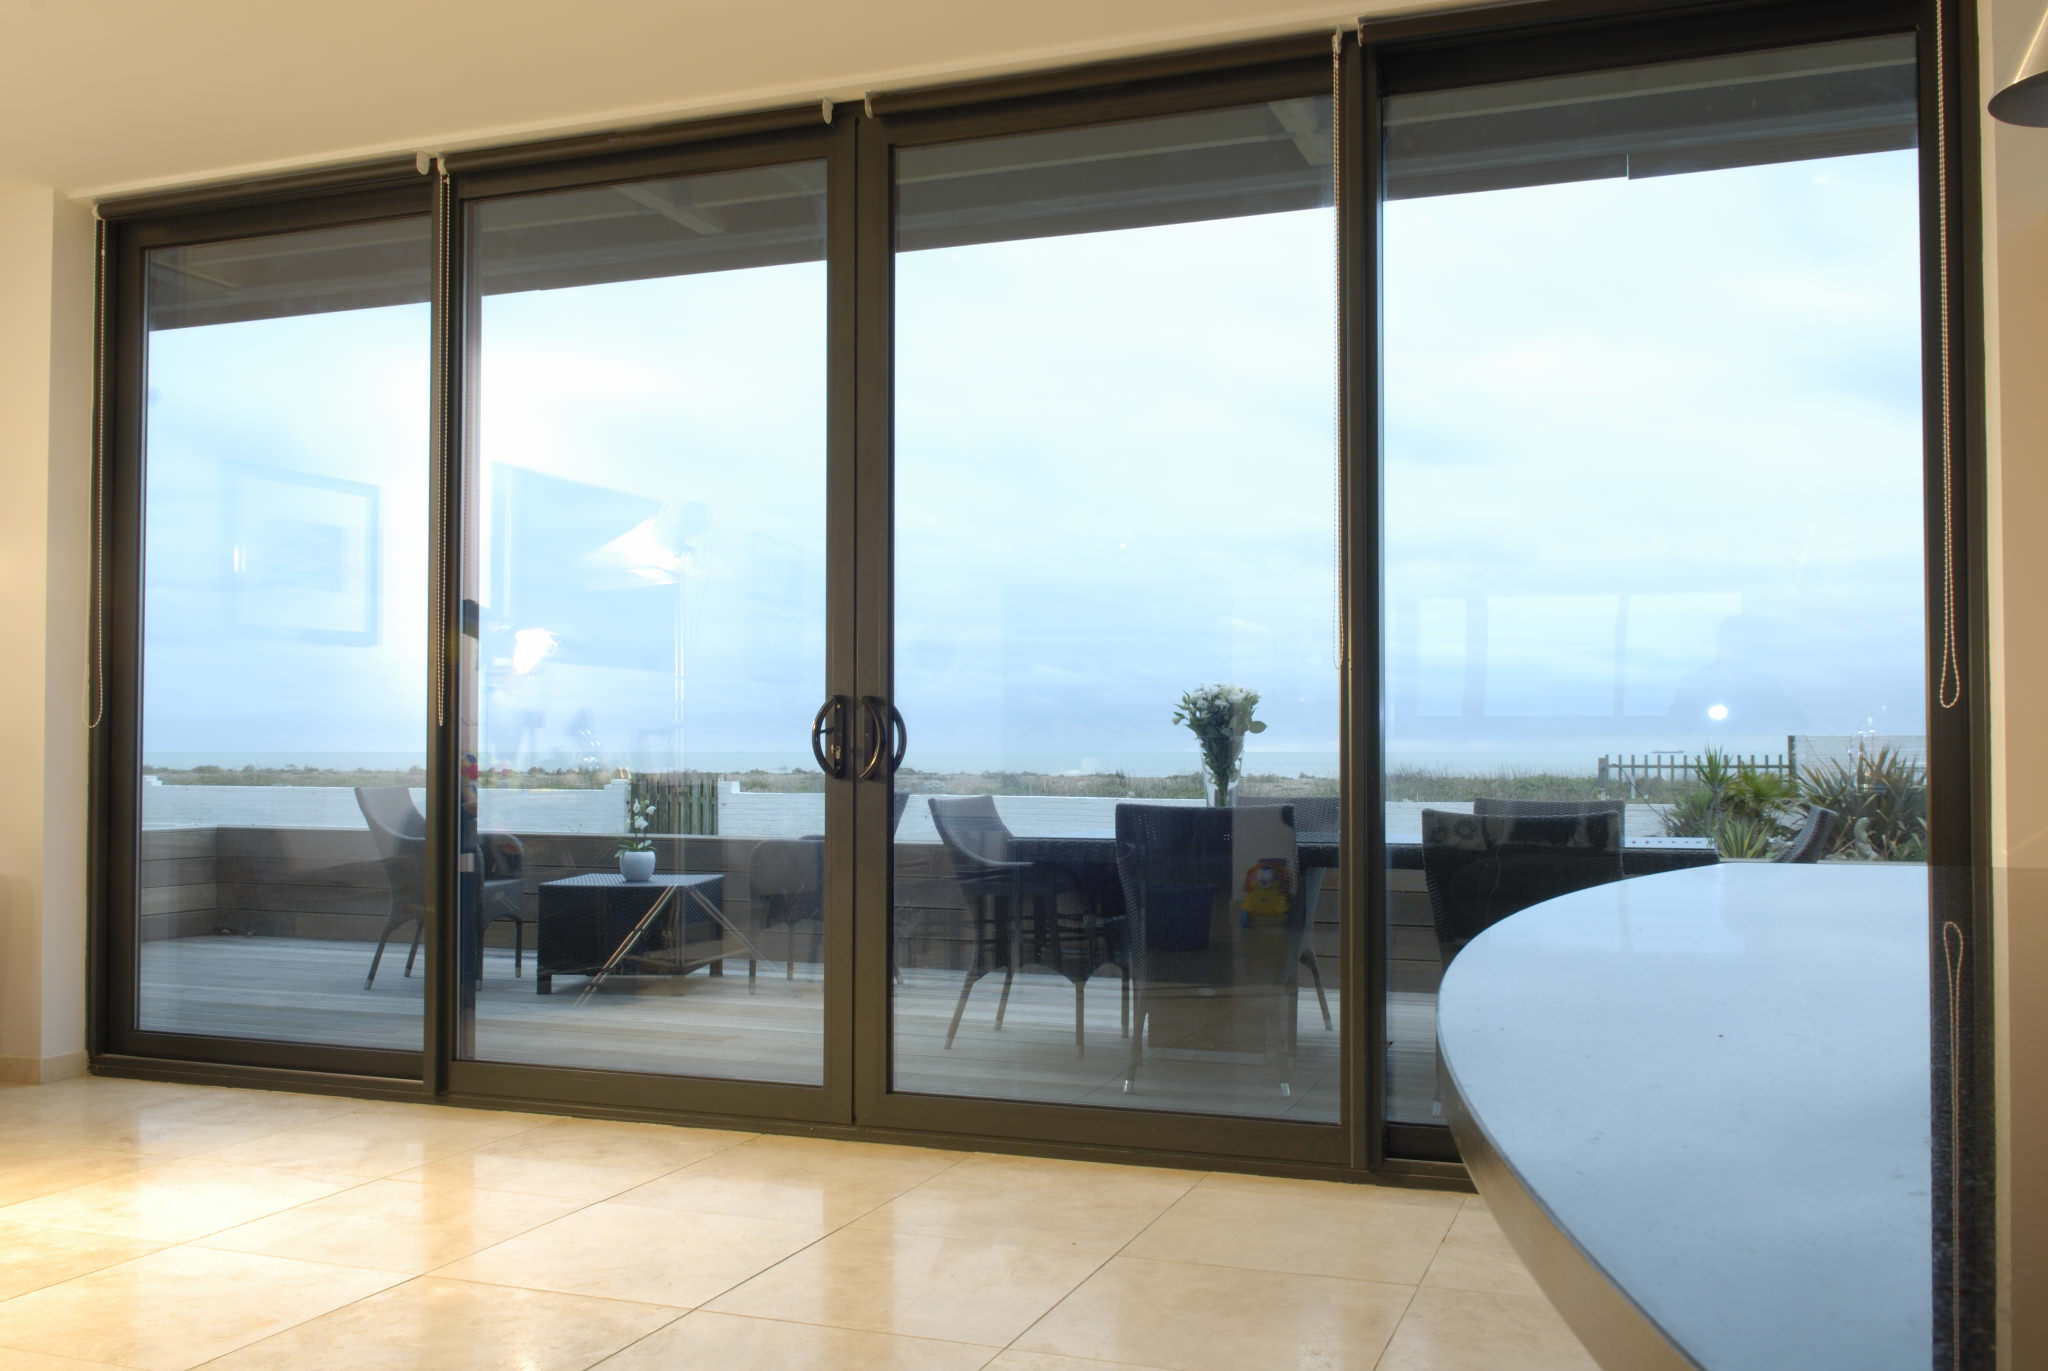 Aluminium Patio Doors Duffield